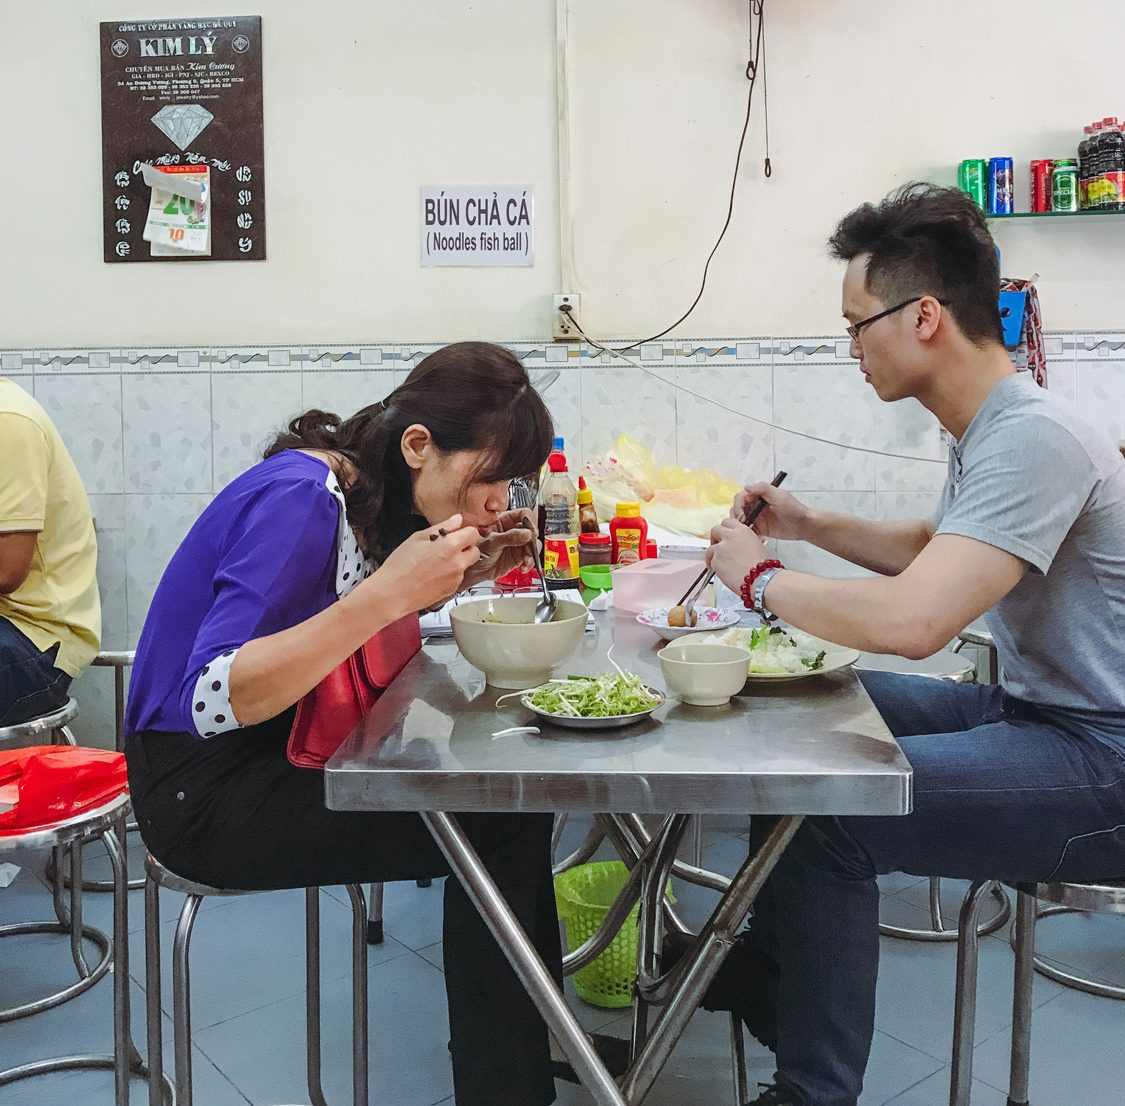 Two people enjoying their food at a small table.